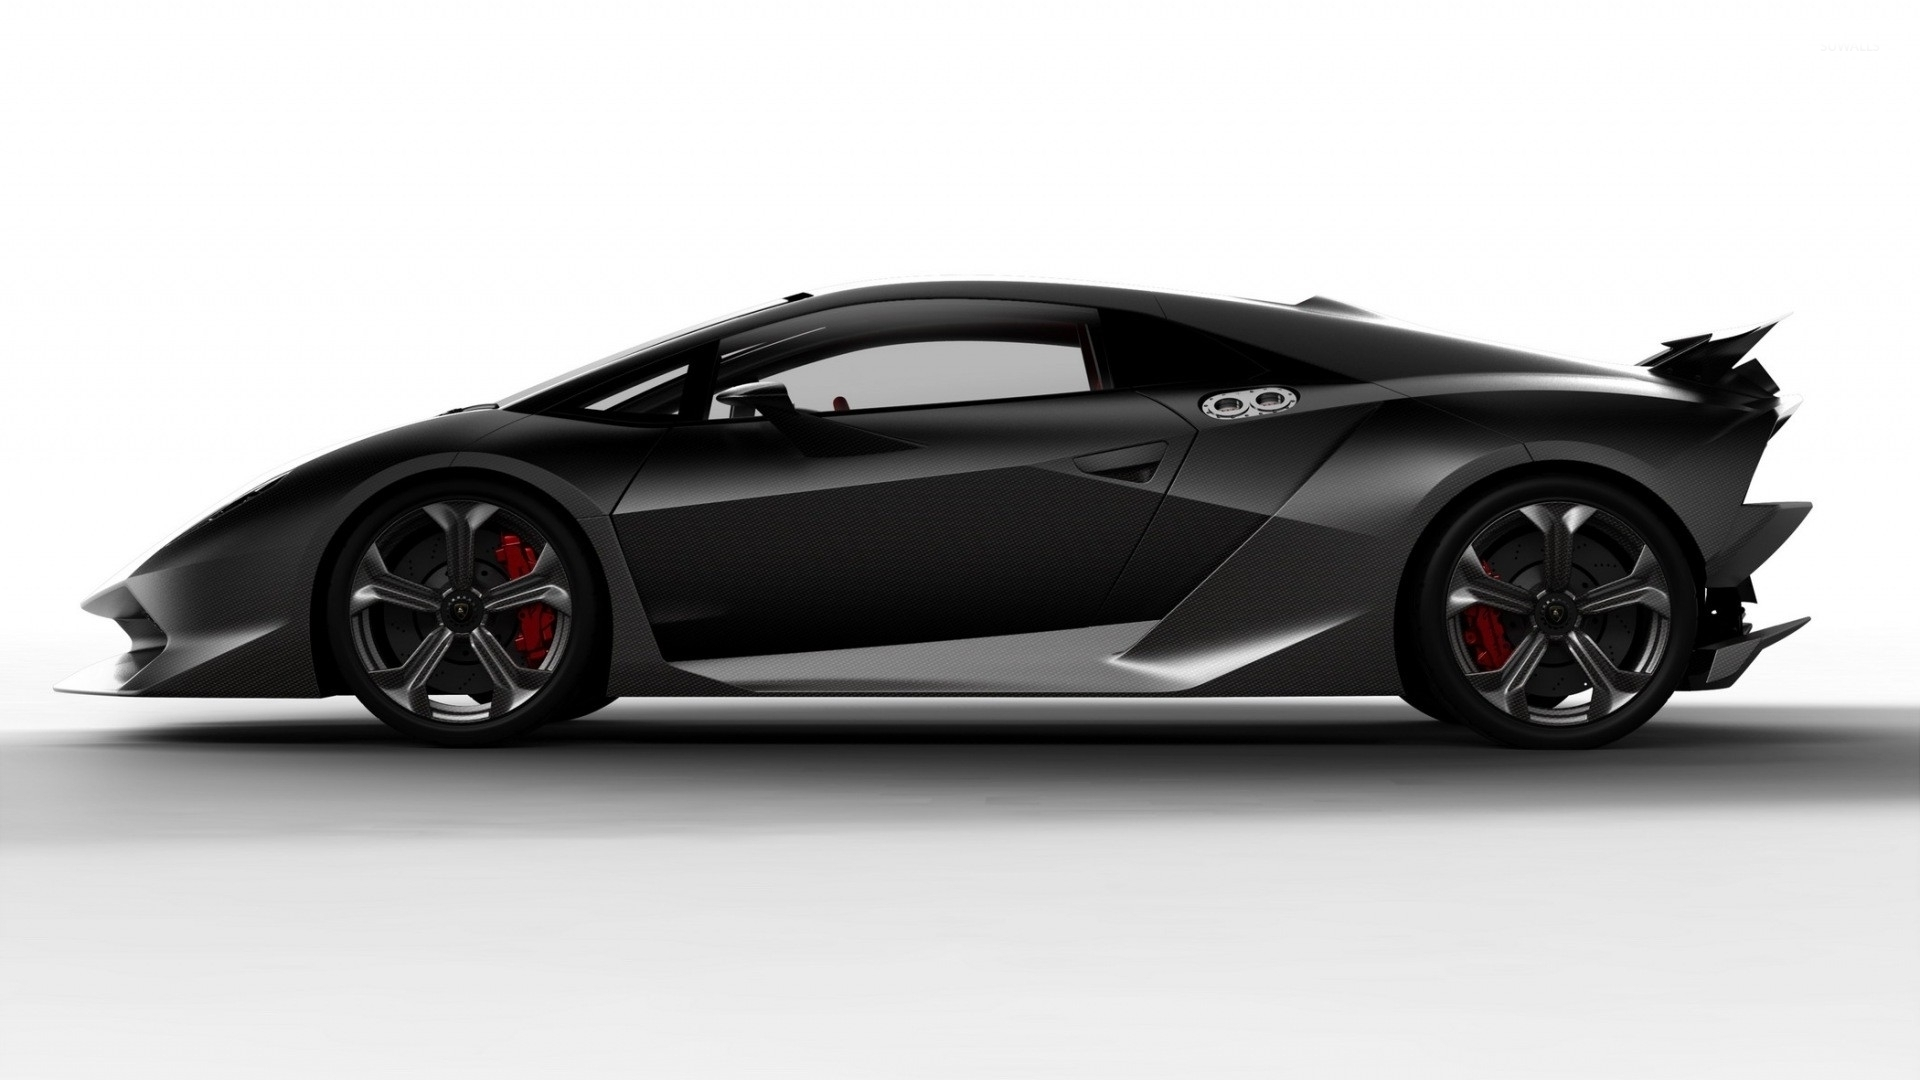 black lamborghini sesto elemento side view wallpaper car wallpapers 53401. Black Bedroom Furniture Sets. Home Design Ideas